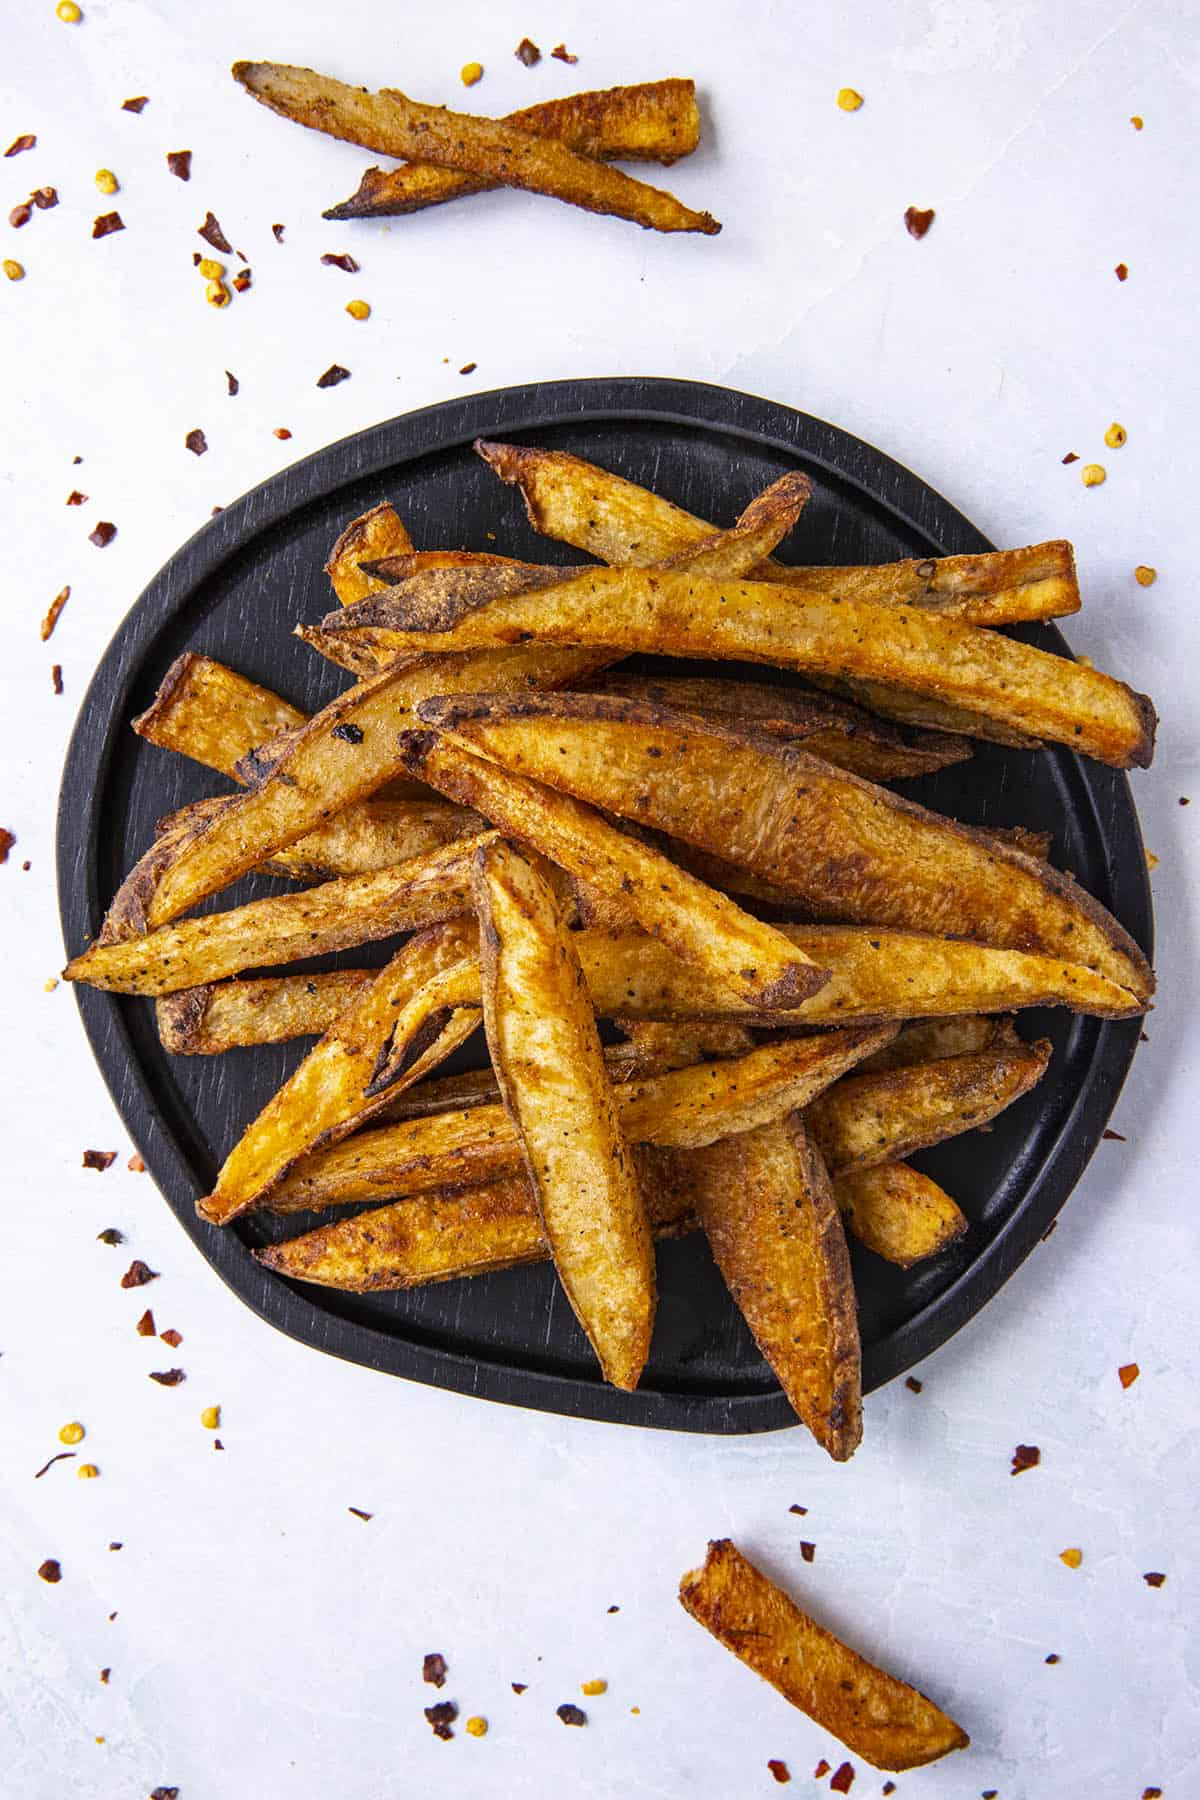 Baked Cajun Fries on a plate, ready to serve